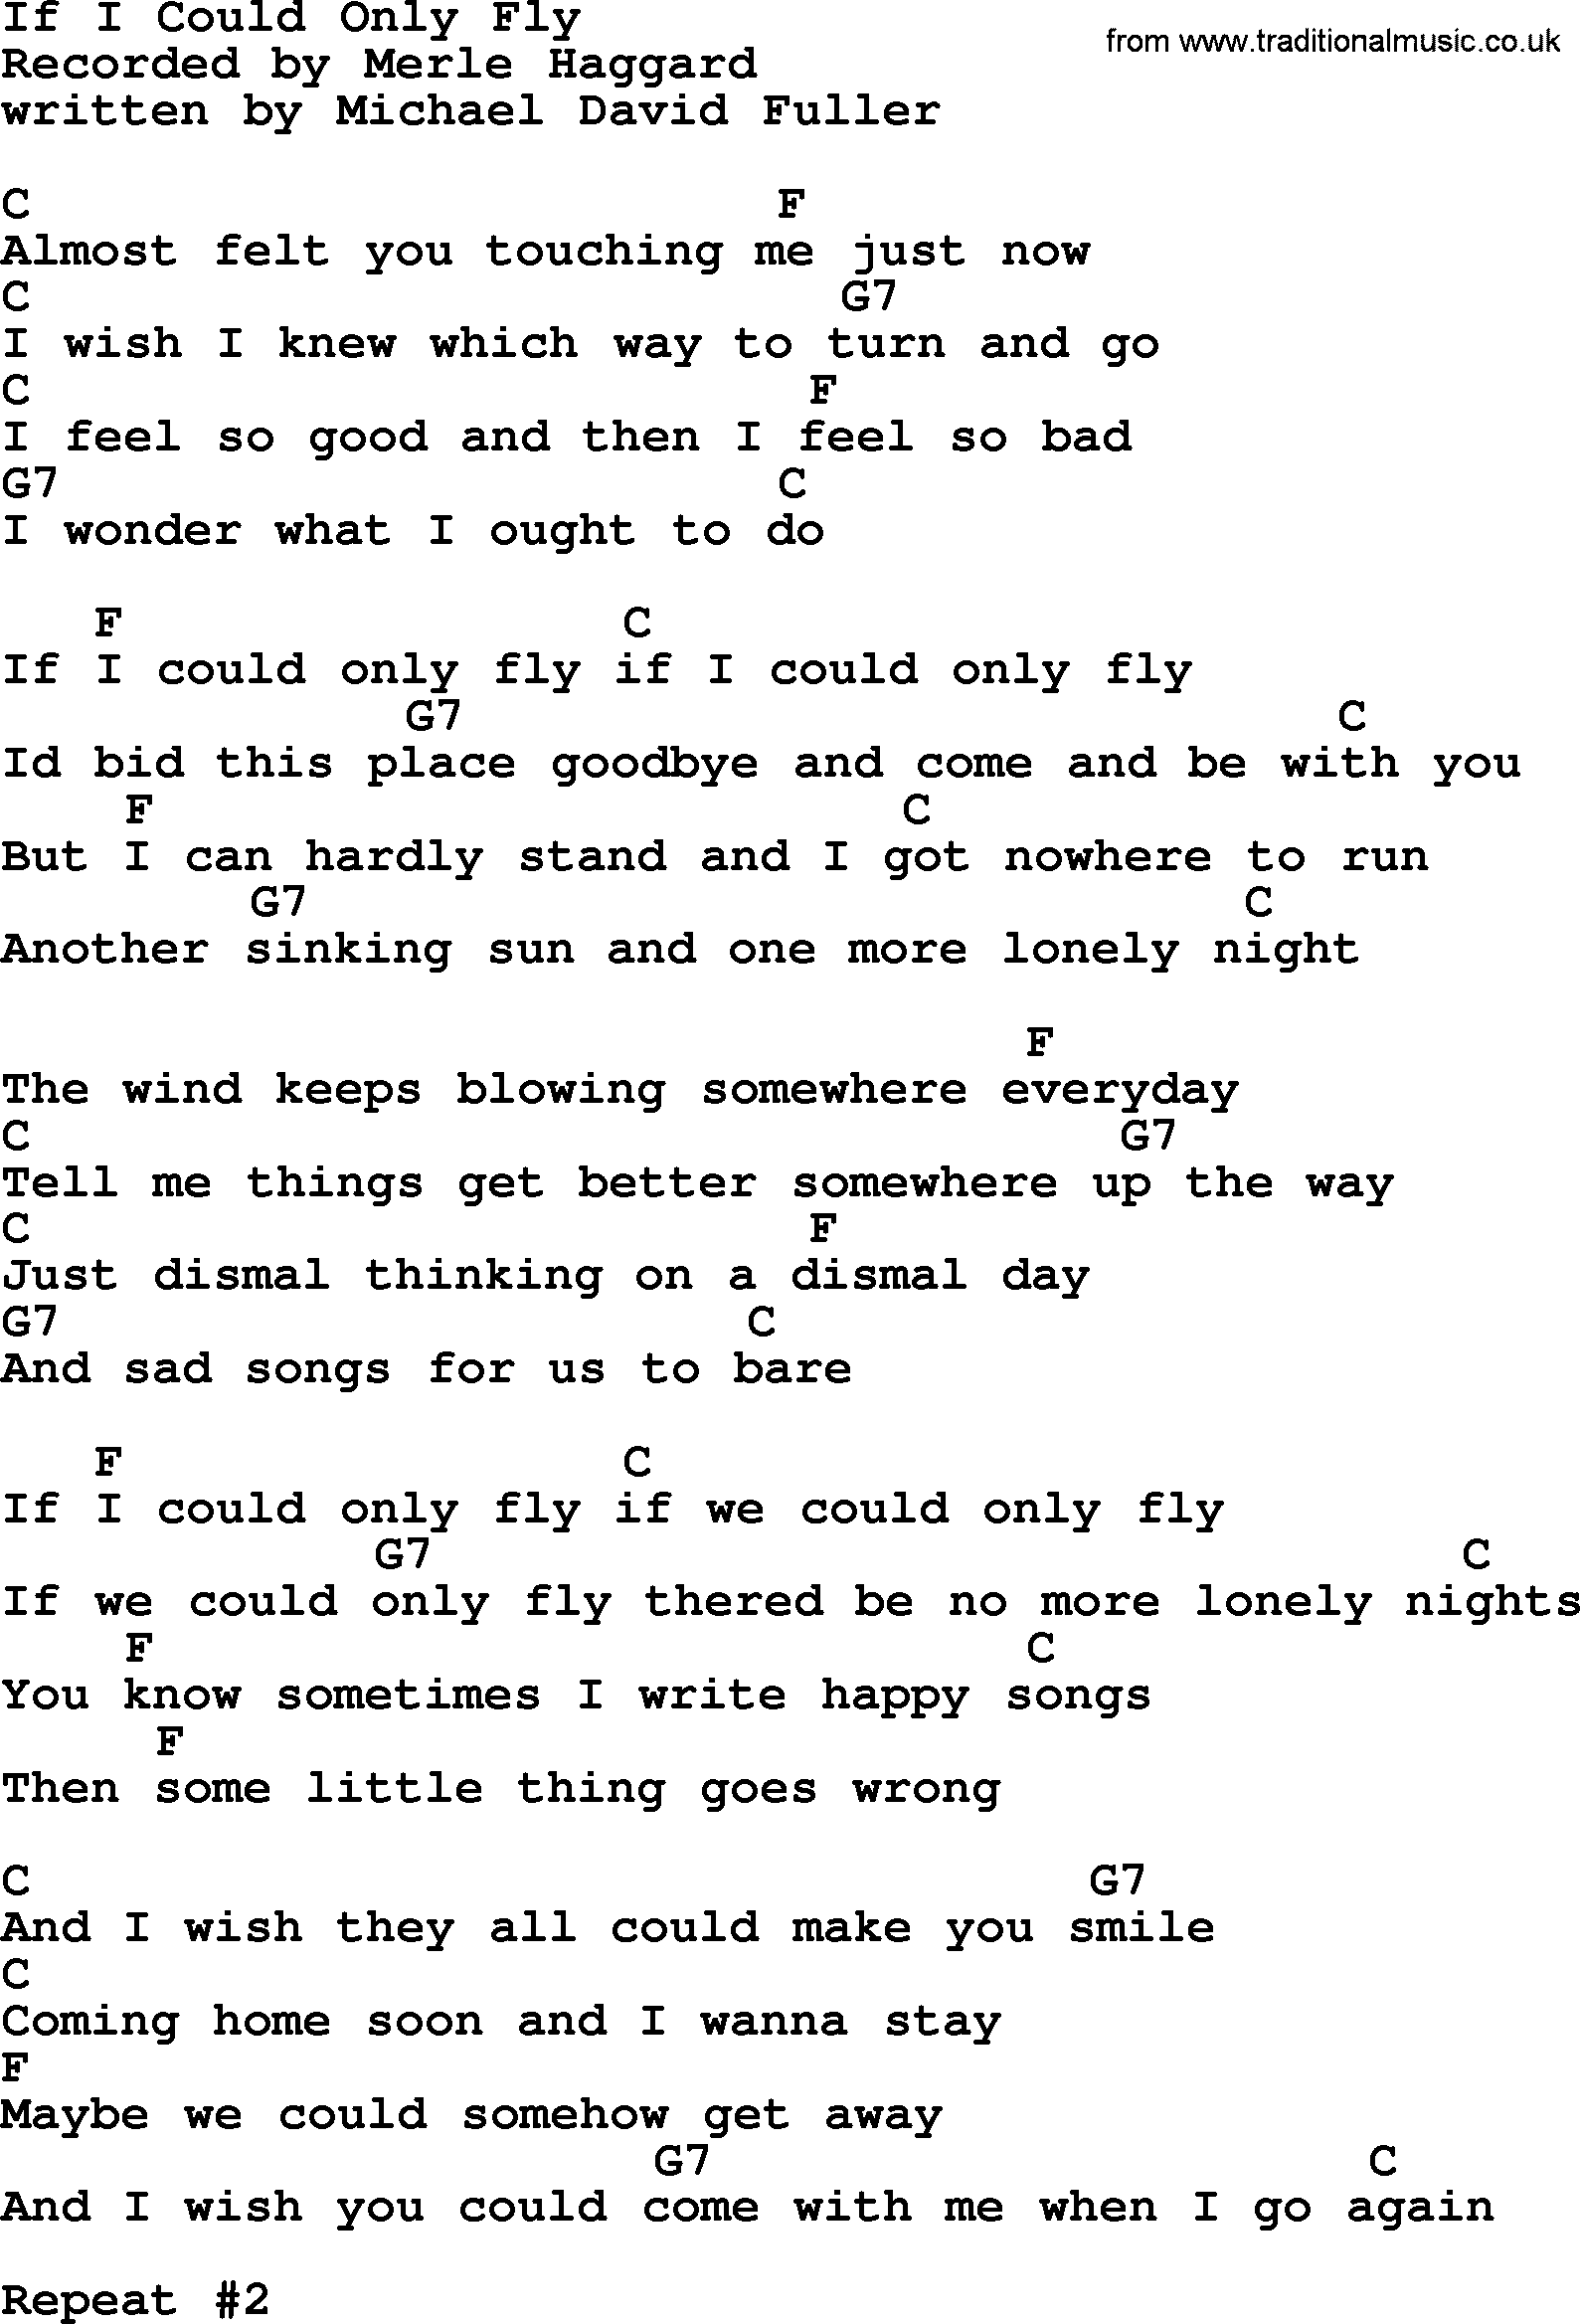 If I Could Only Fly By Merle Haggard Lyrics And Chords